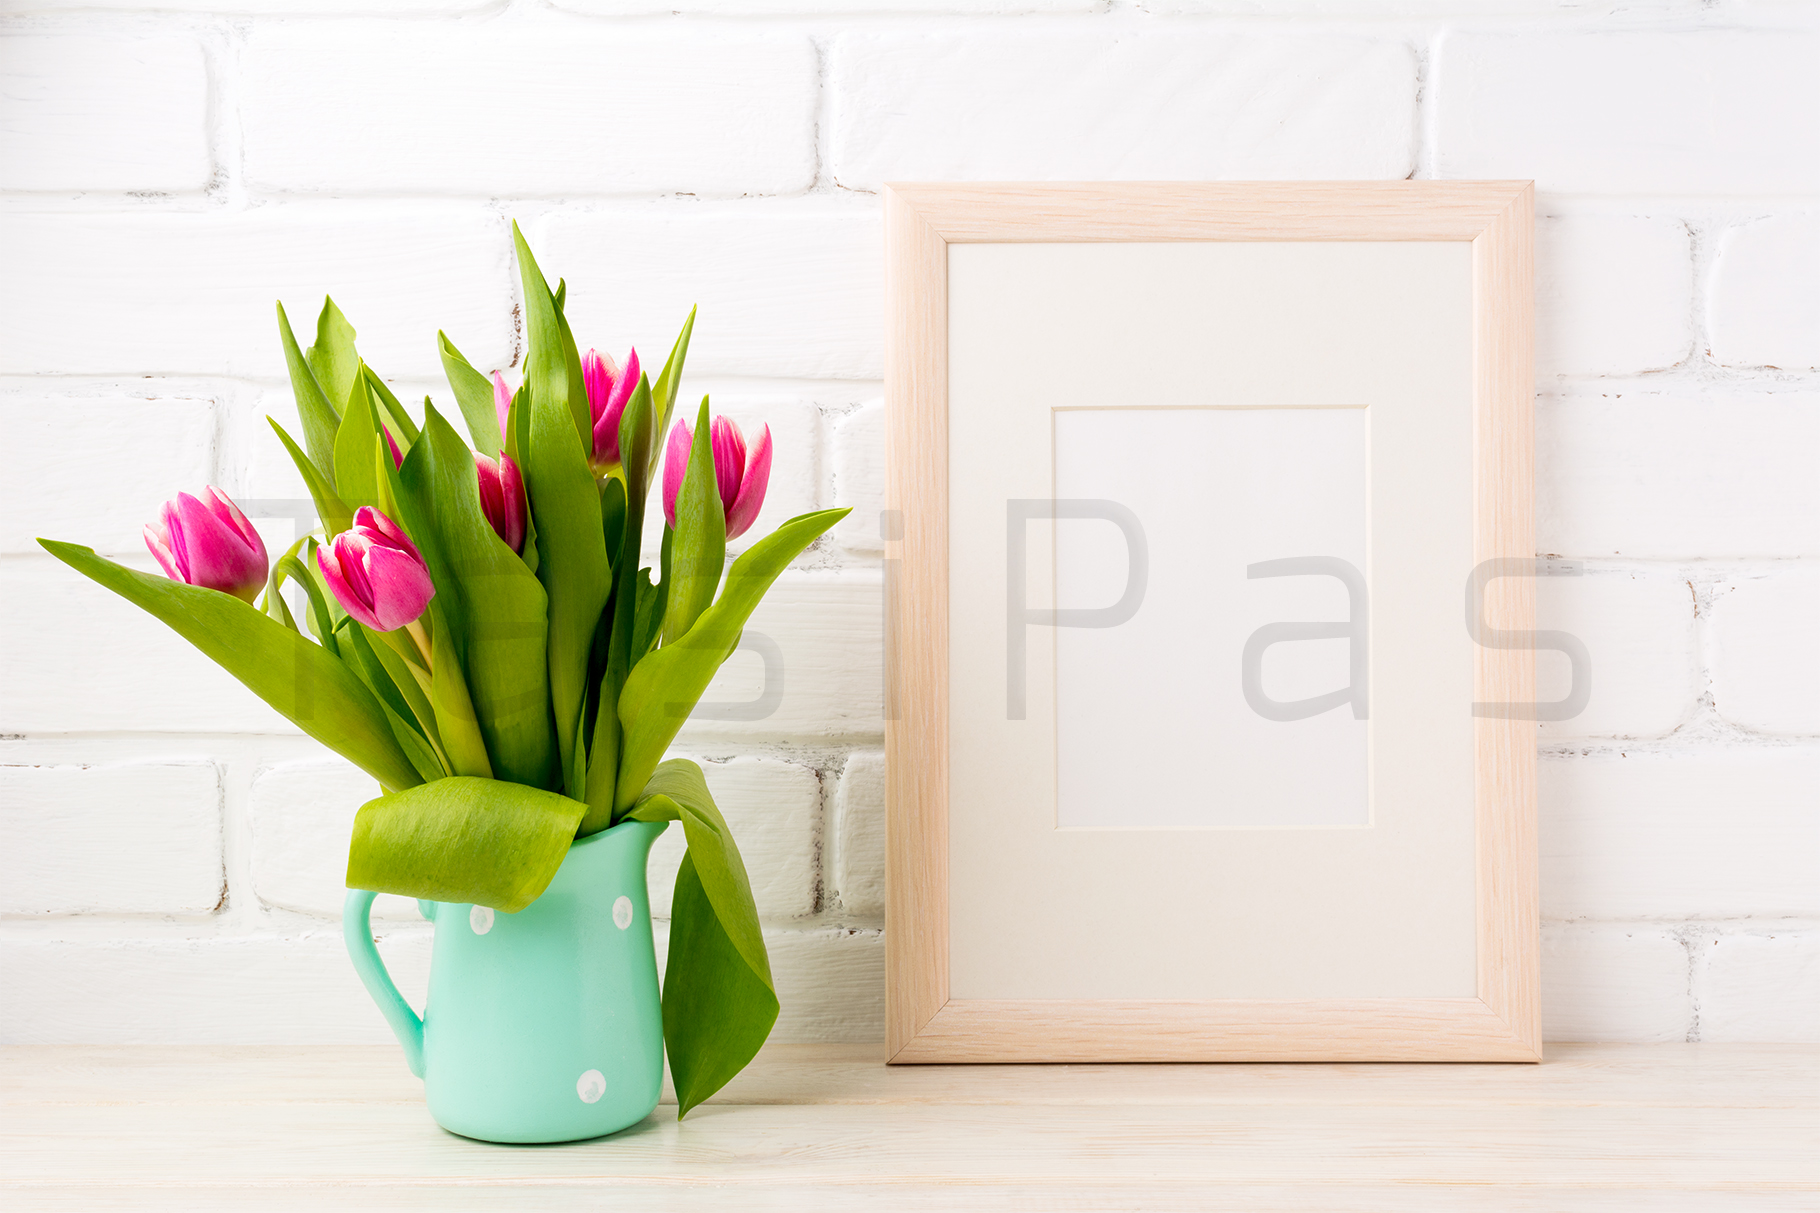 Wooden frame mockup with bright pink tulips bouquet in mint jug near white painted brick wall.  example image 3